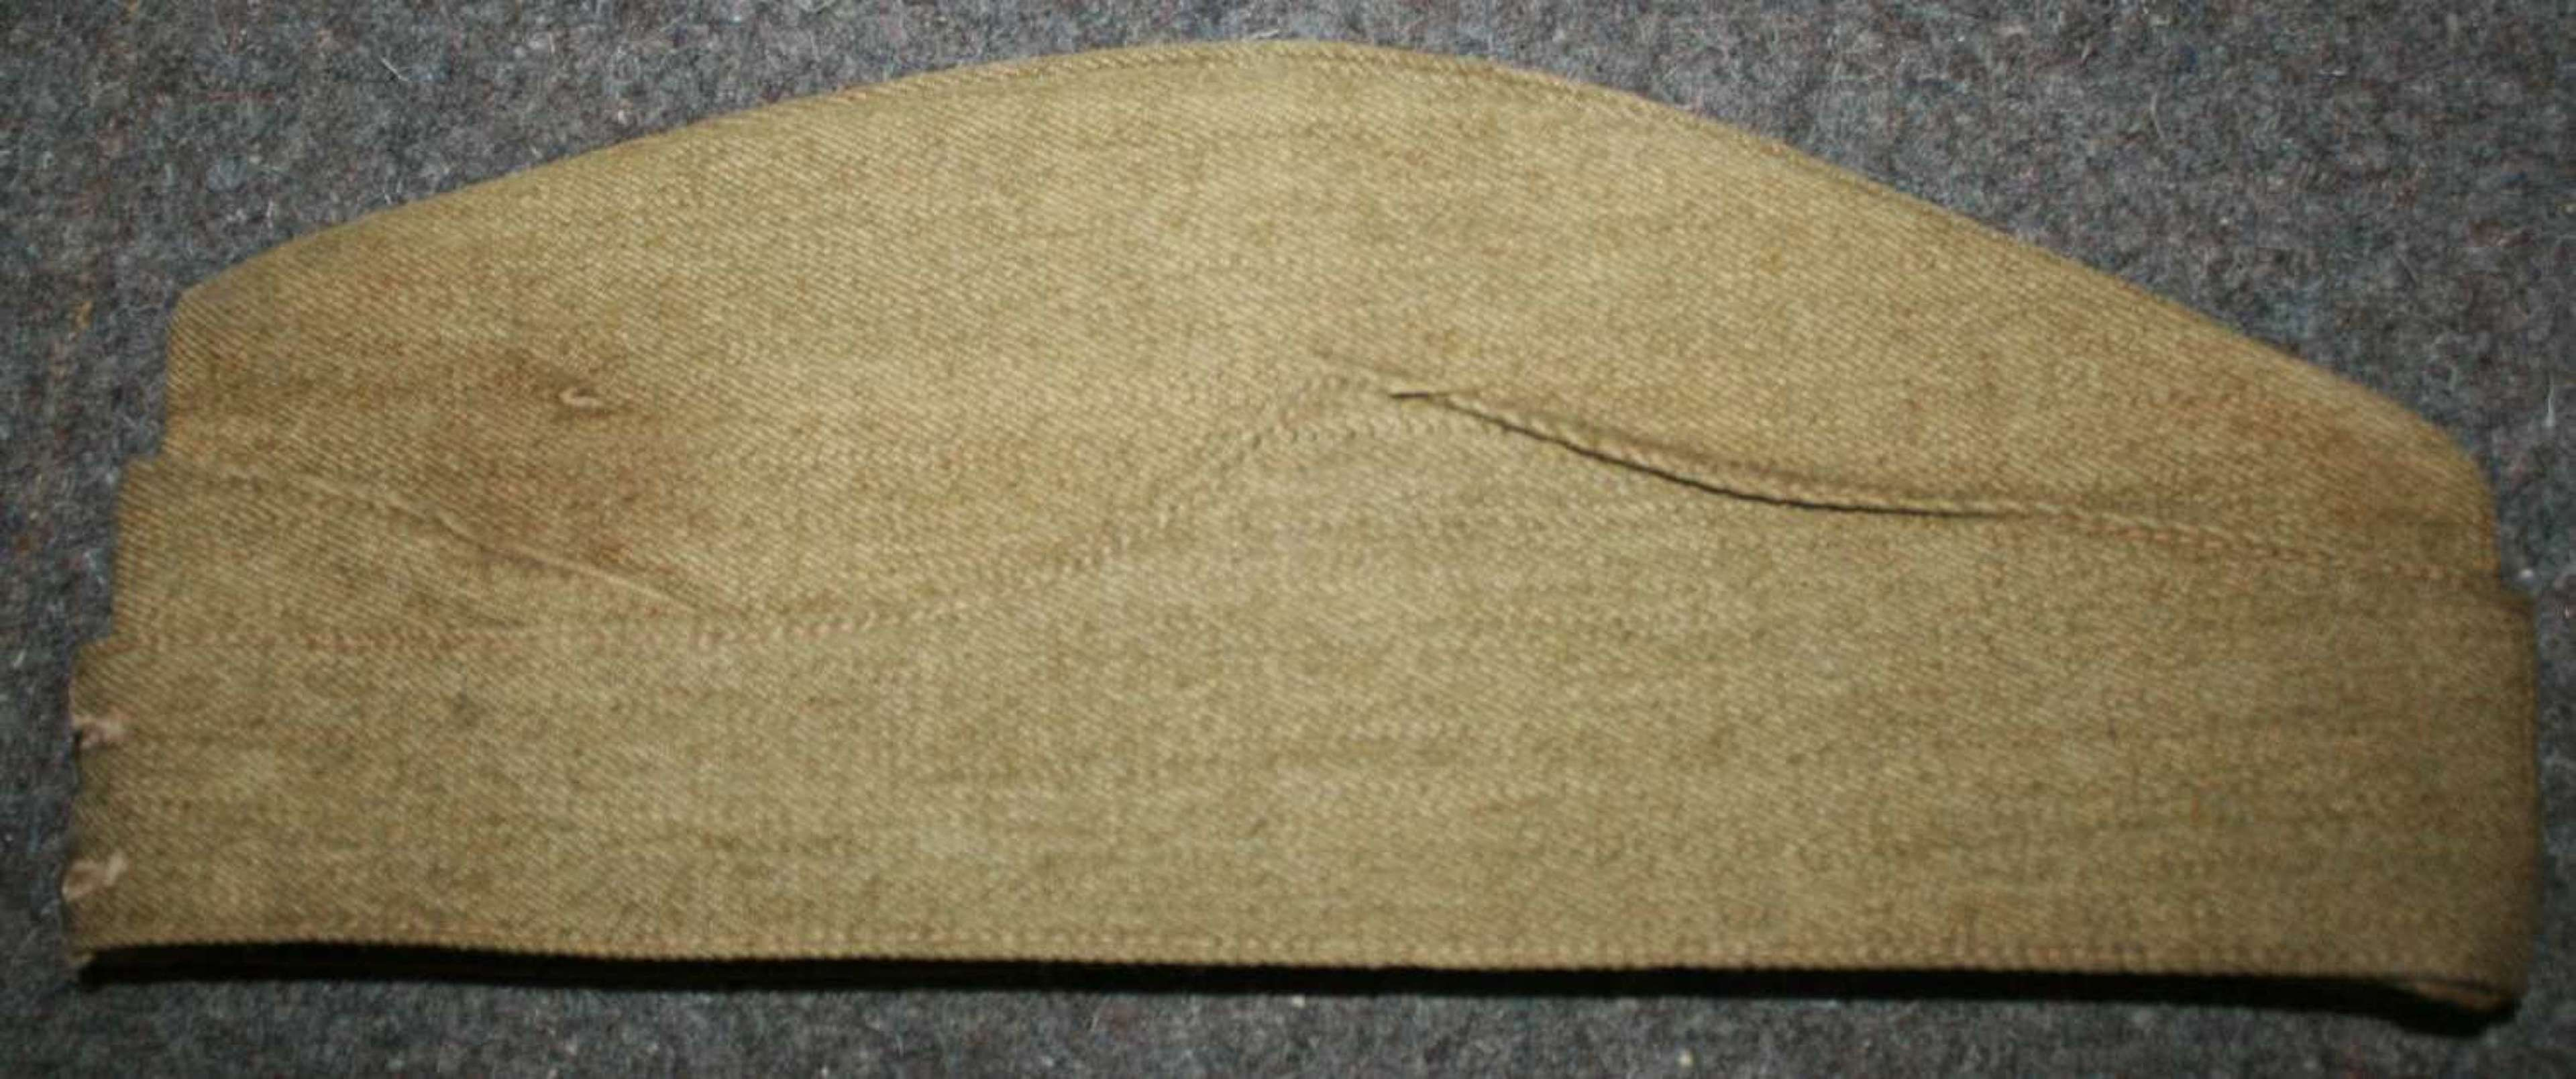 A 1943 DATED LIGHTLY USED SIZE 7 ARMY SIDE CAP